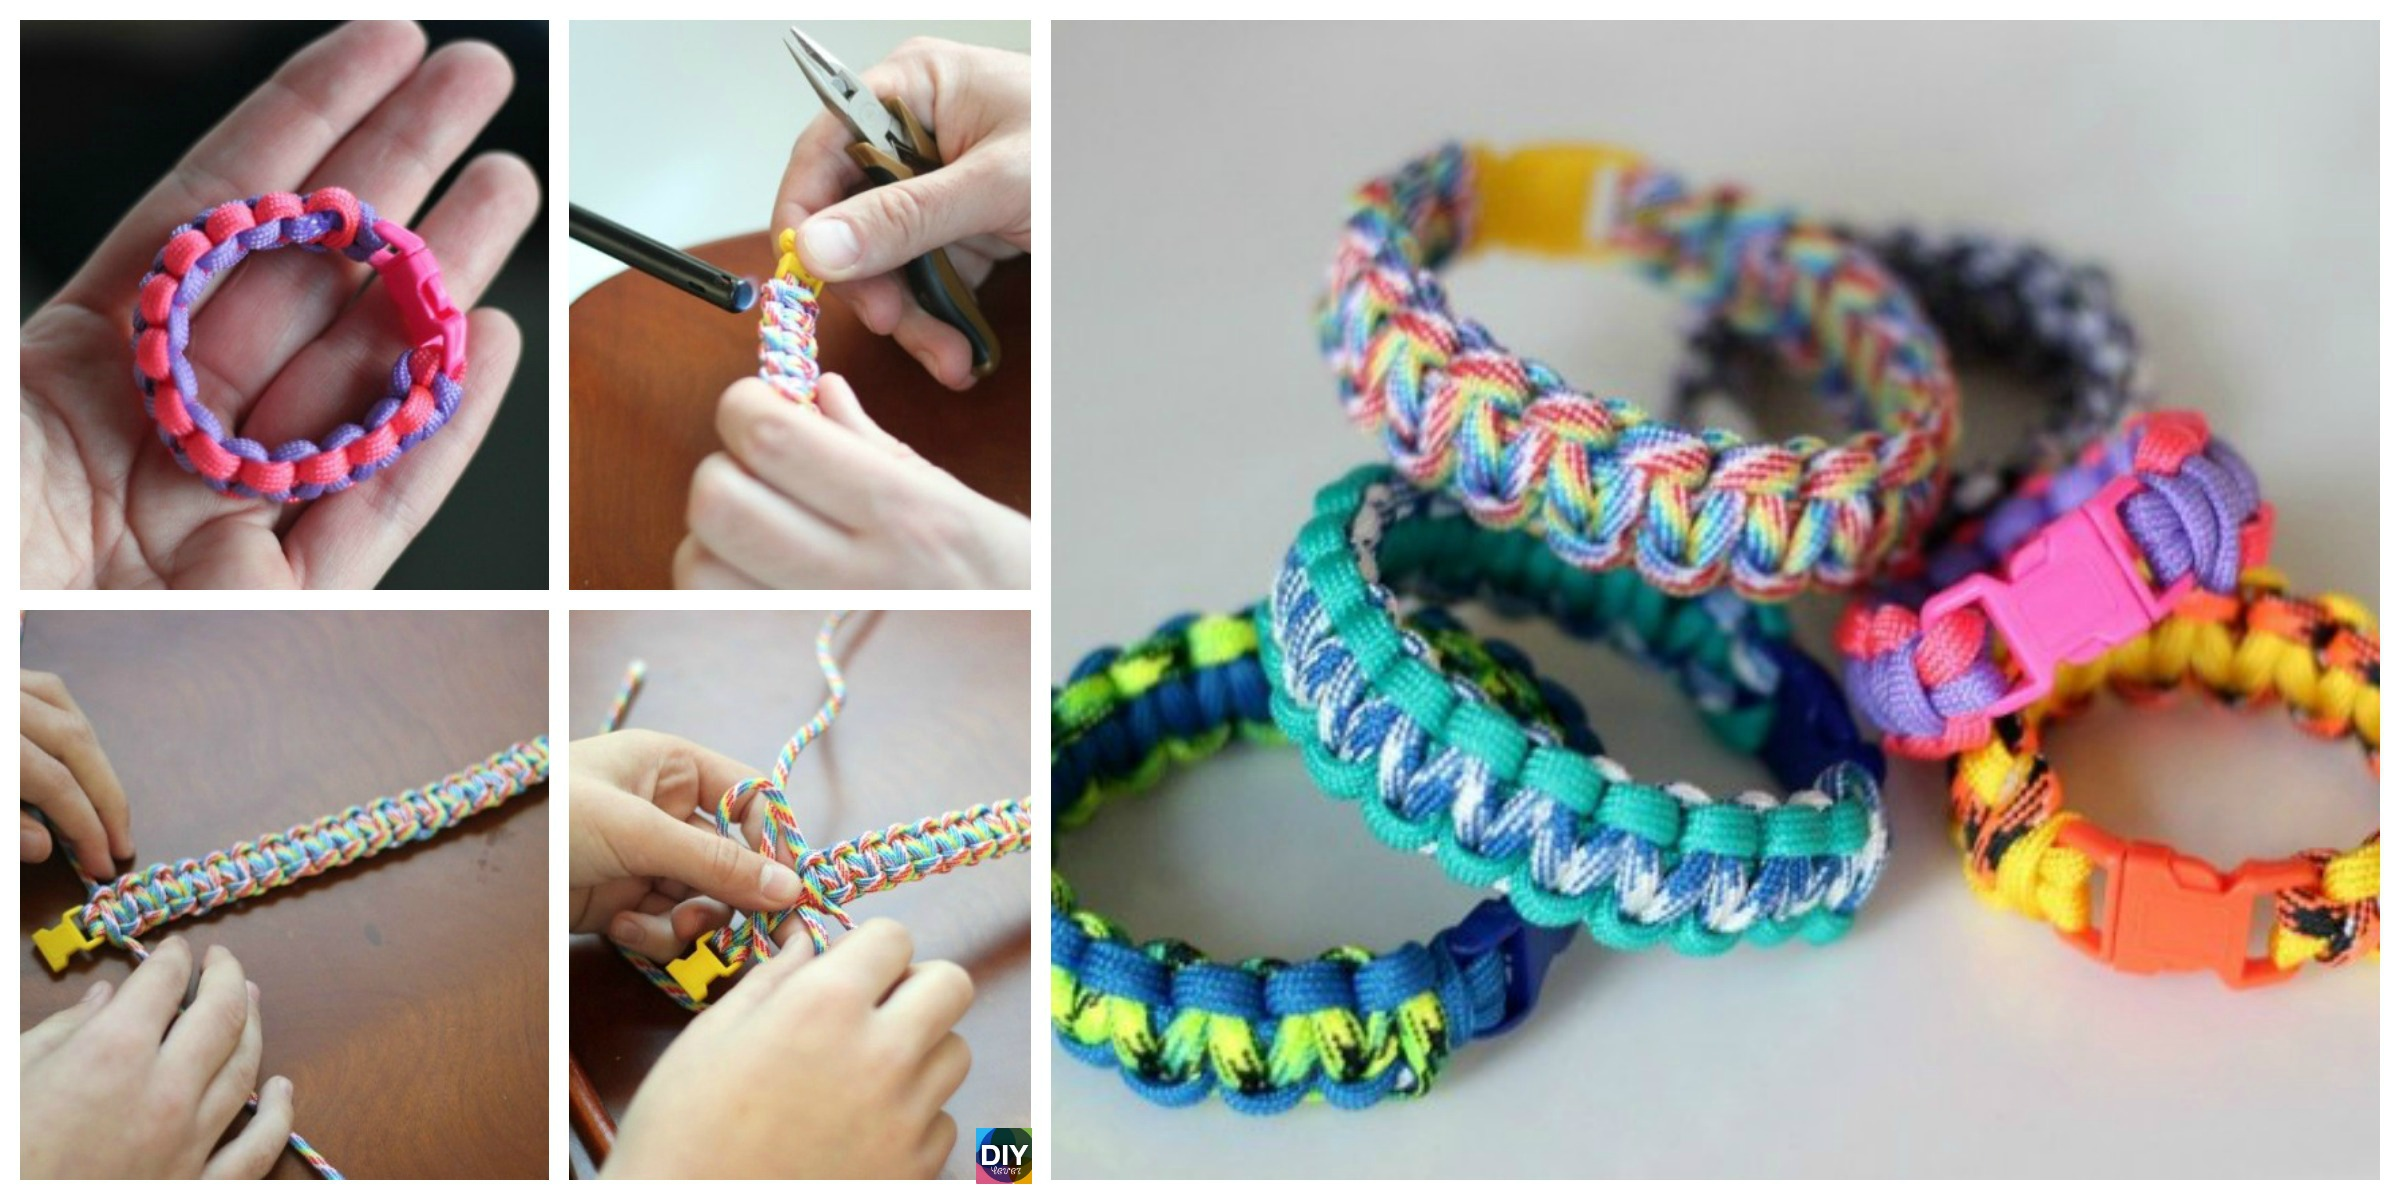 DIY Paracord Bracelet Tutorial – Step by Step